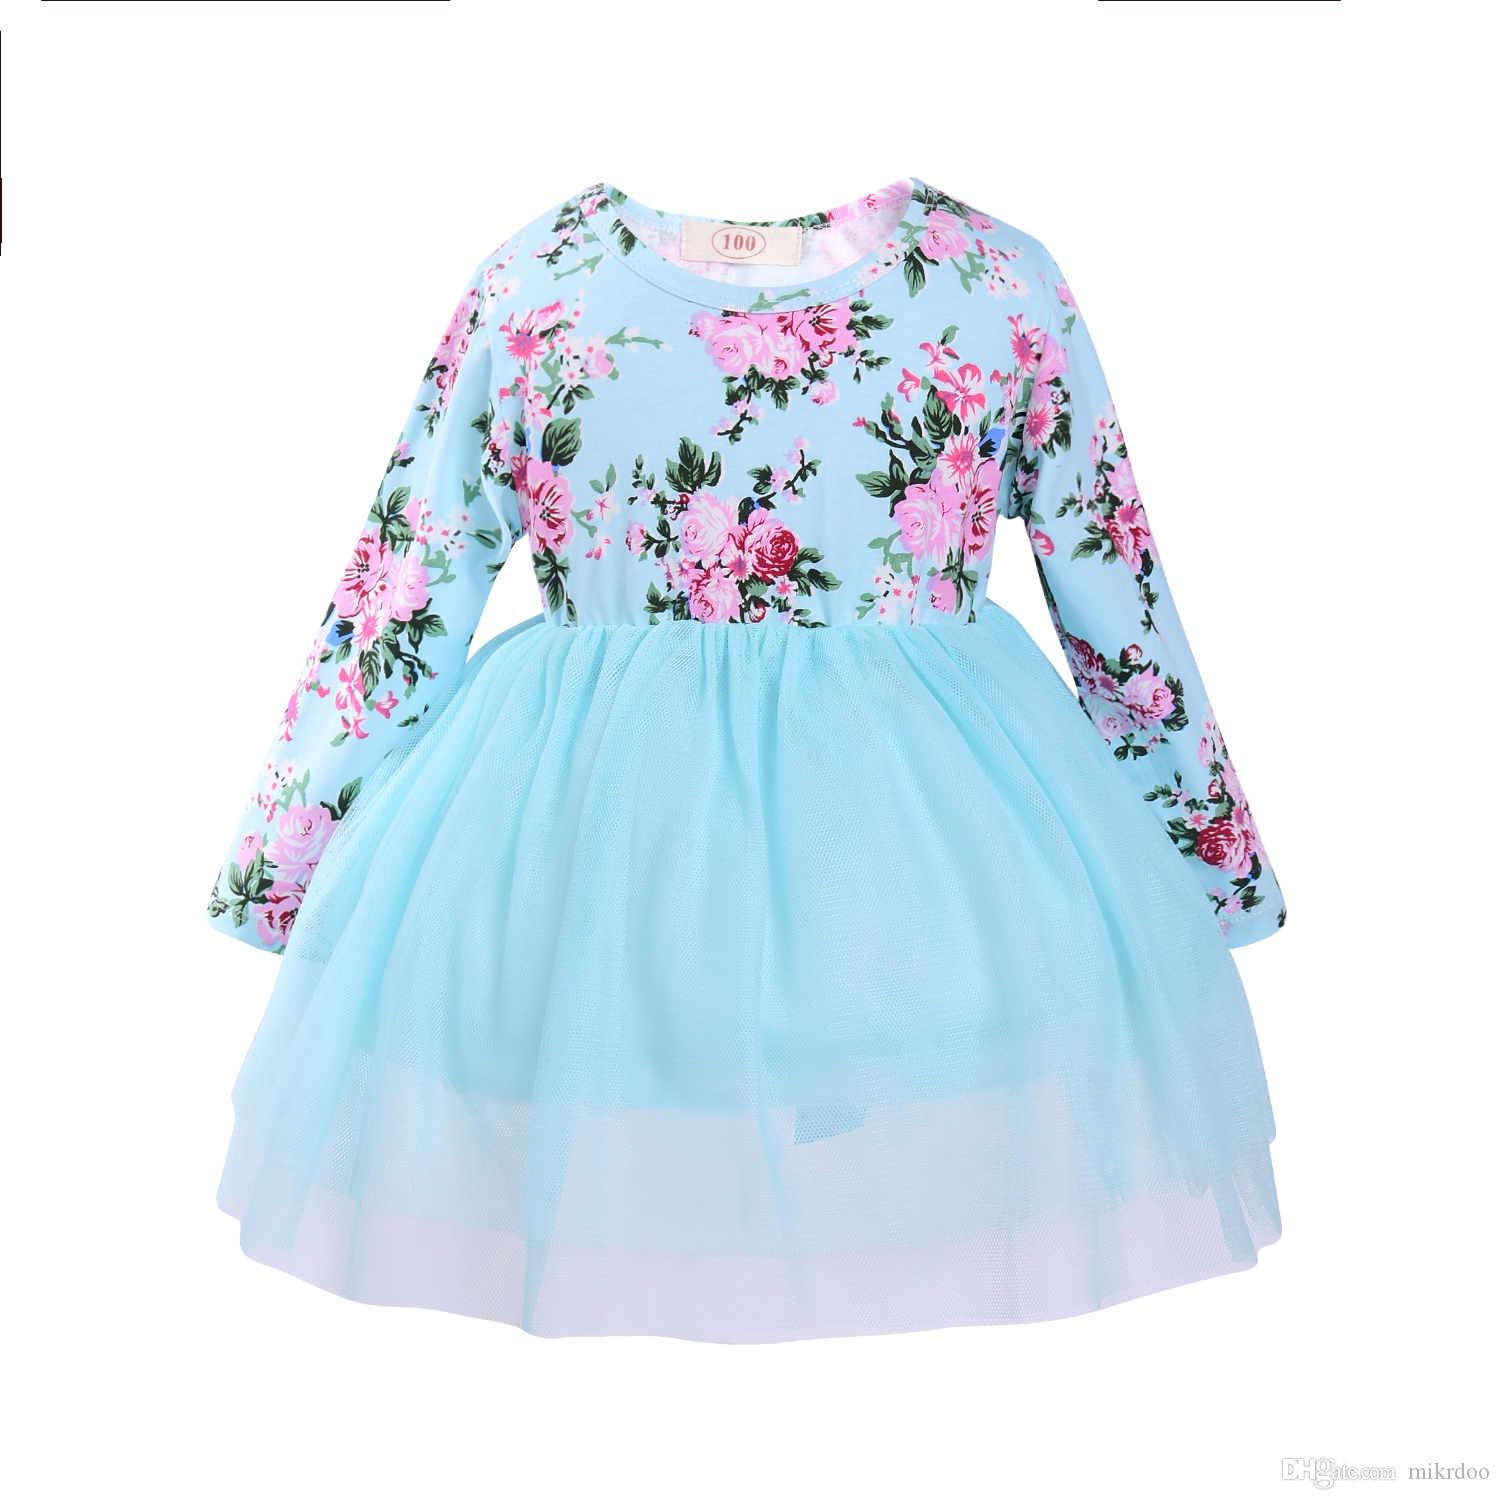 4b30eda47f 2019 Mikrdoo Floral Princess Dress Kids Baby Girl Long Sleeve Tutu Tule Dresses  First Birthday Gift Formal Wedding Party Wear Clothes From Mikrdoo